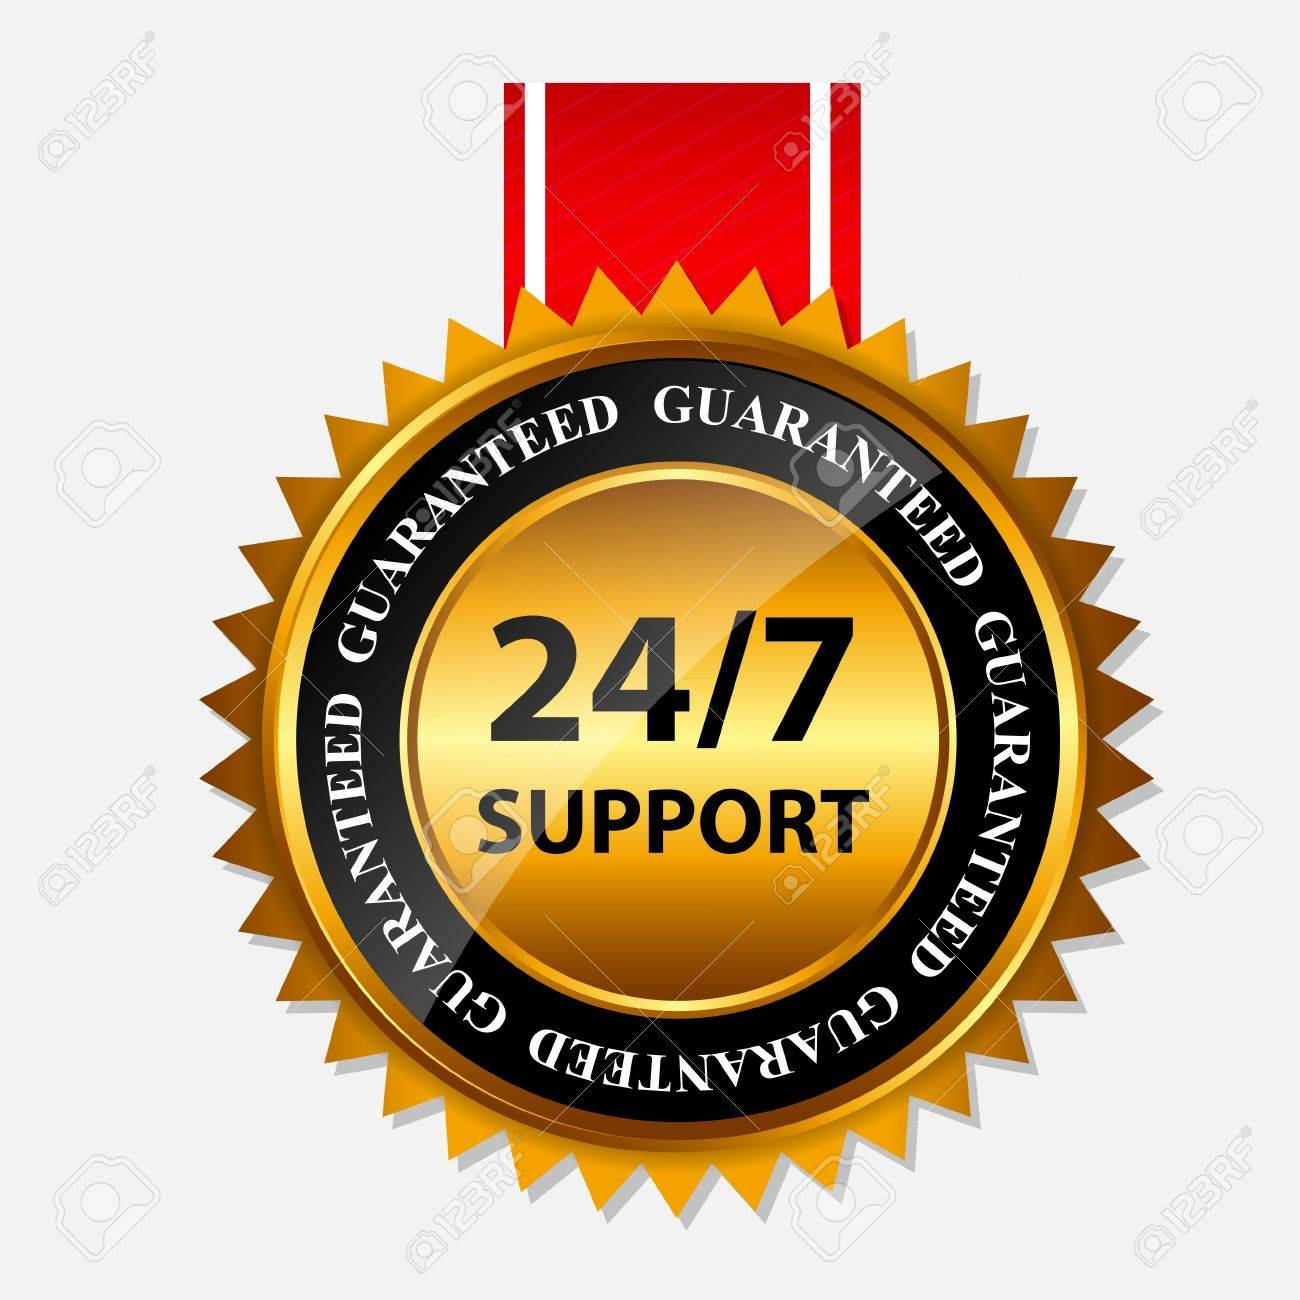 Vector 24 7 SUPPORT gold sign, label template Stock Vector - 20227975